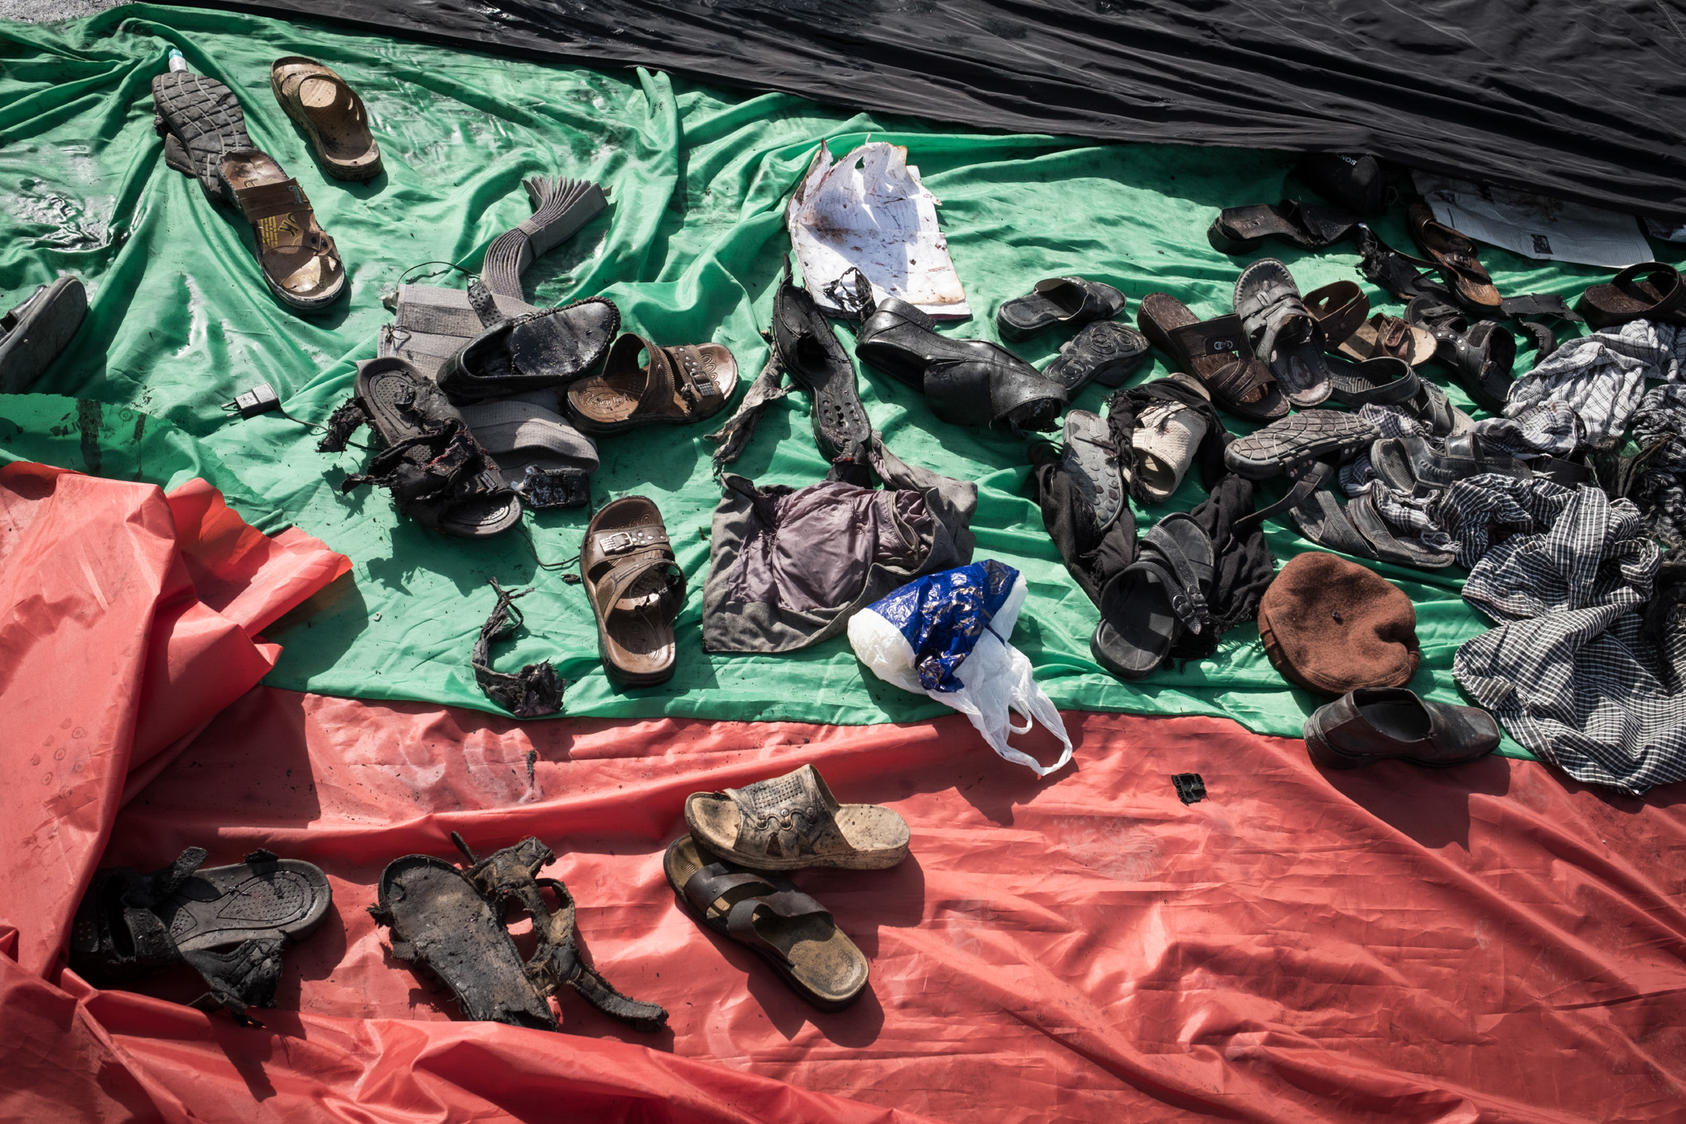 Scattered belongings after a suicide bombing targeting a demonstration by Hazaras, an ethnic minority group, in Kabul, Afghanistan